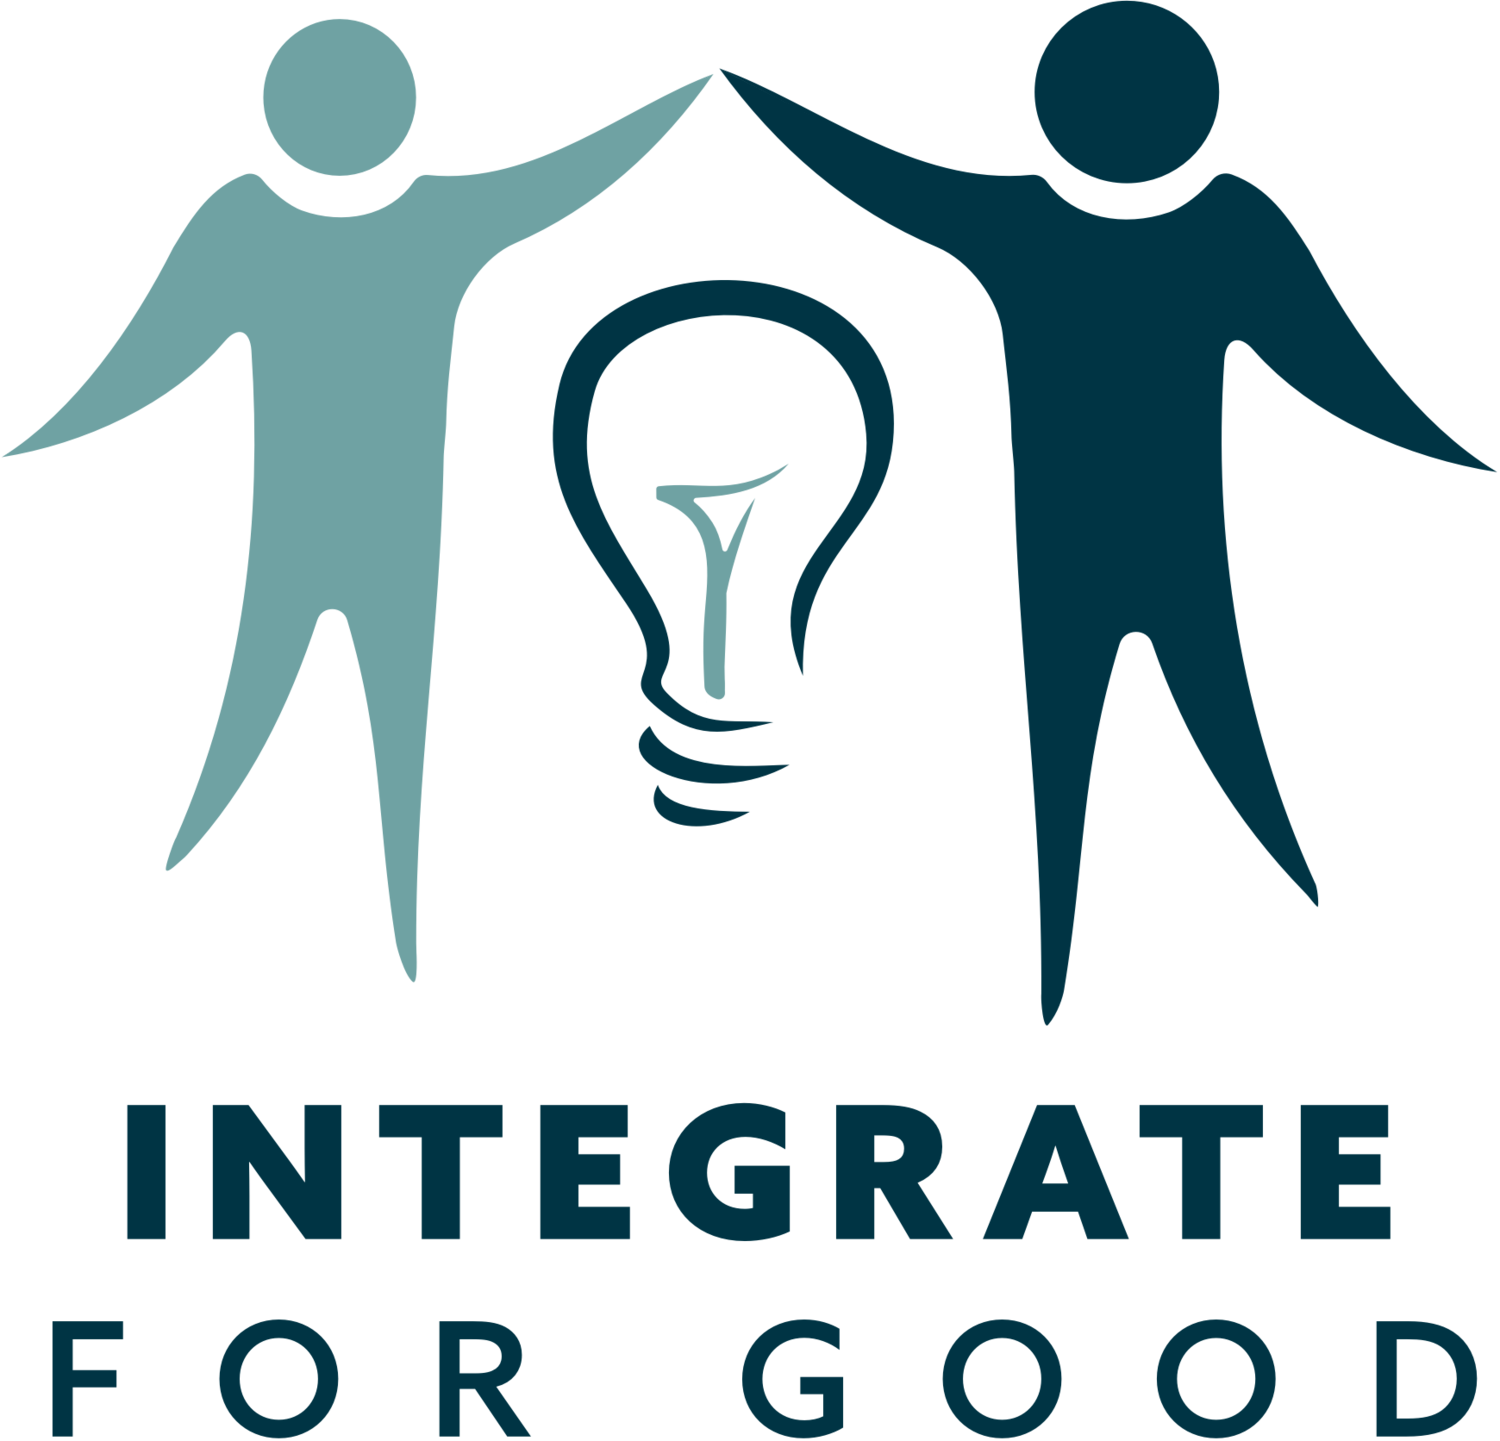 Integrate For Good logo